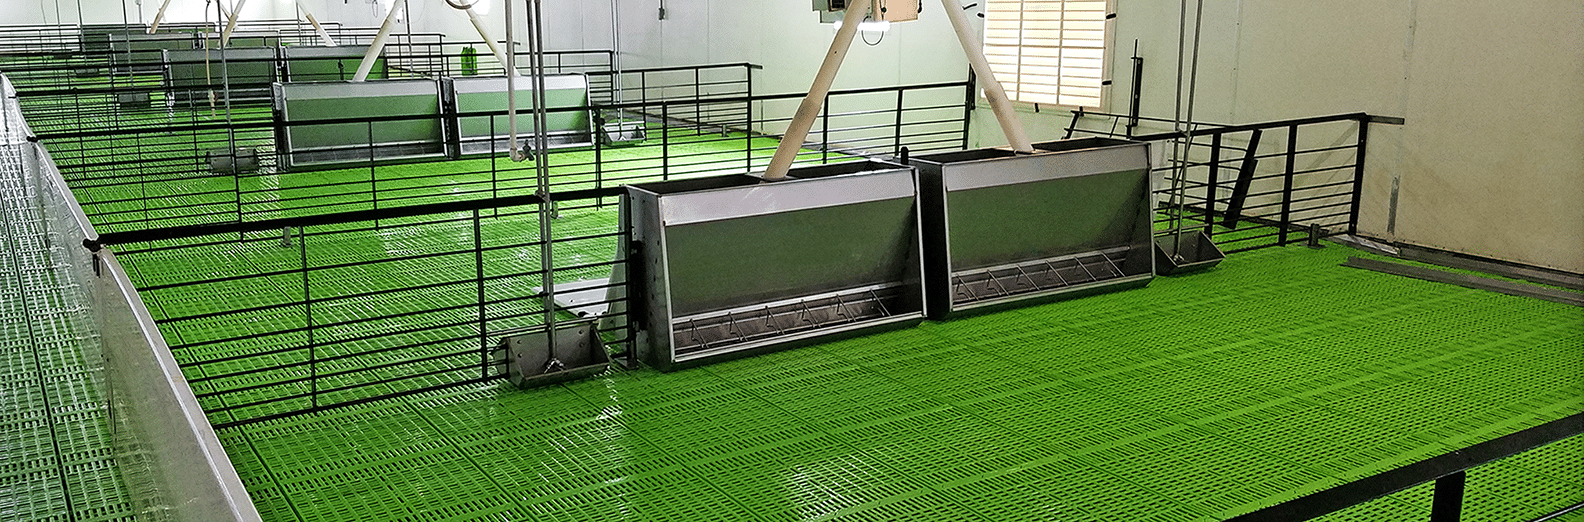 Double L Poultry And Swine Ventilation And Flooring Products